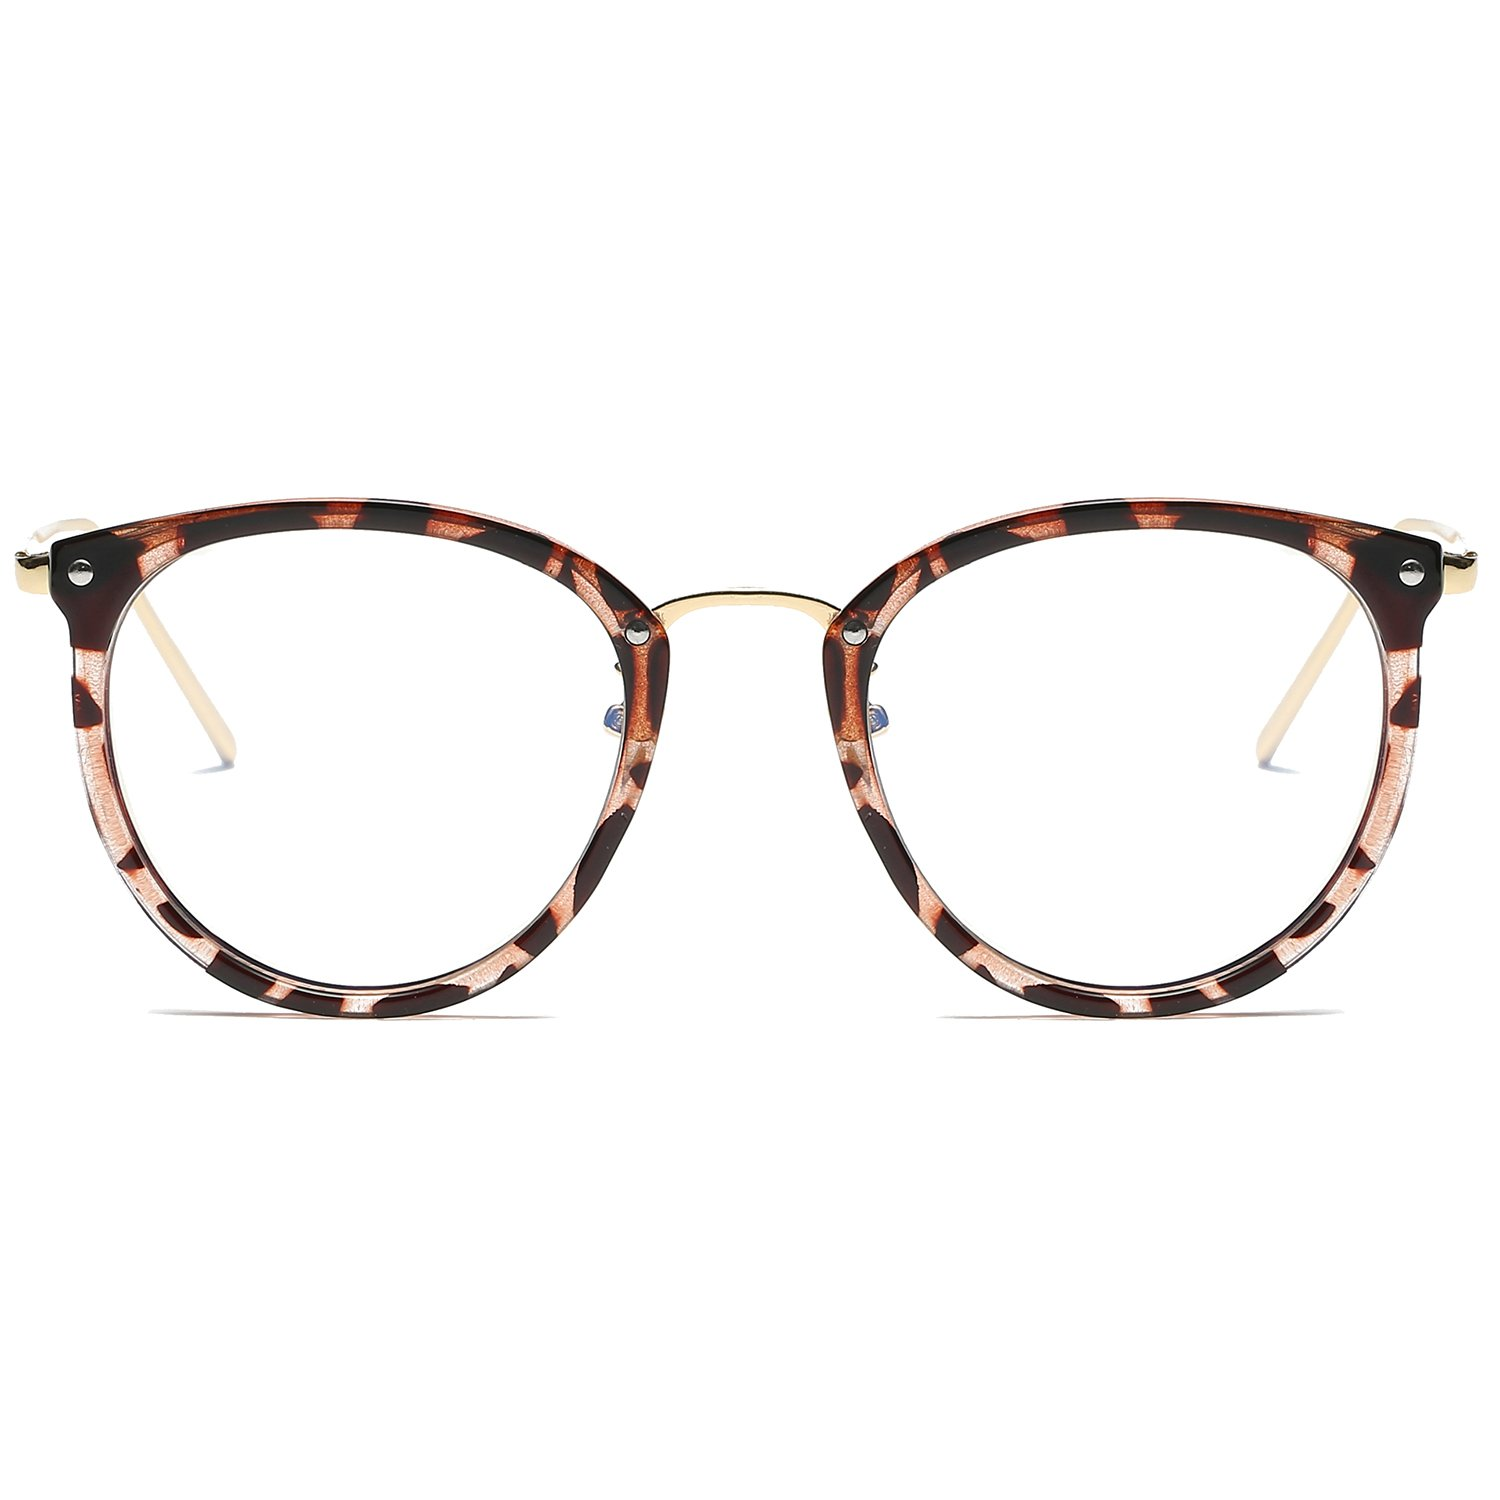 6d44e4cc04f SOJOS Round Women Eyeglasses Fashion Eyewear Optical Frame Clear Glasses  SJ5969 With Havana Brown Frame Gold Temple  Amazon.in  Clothing    Accessories